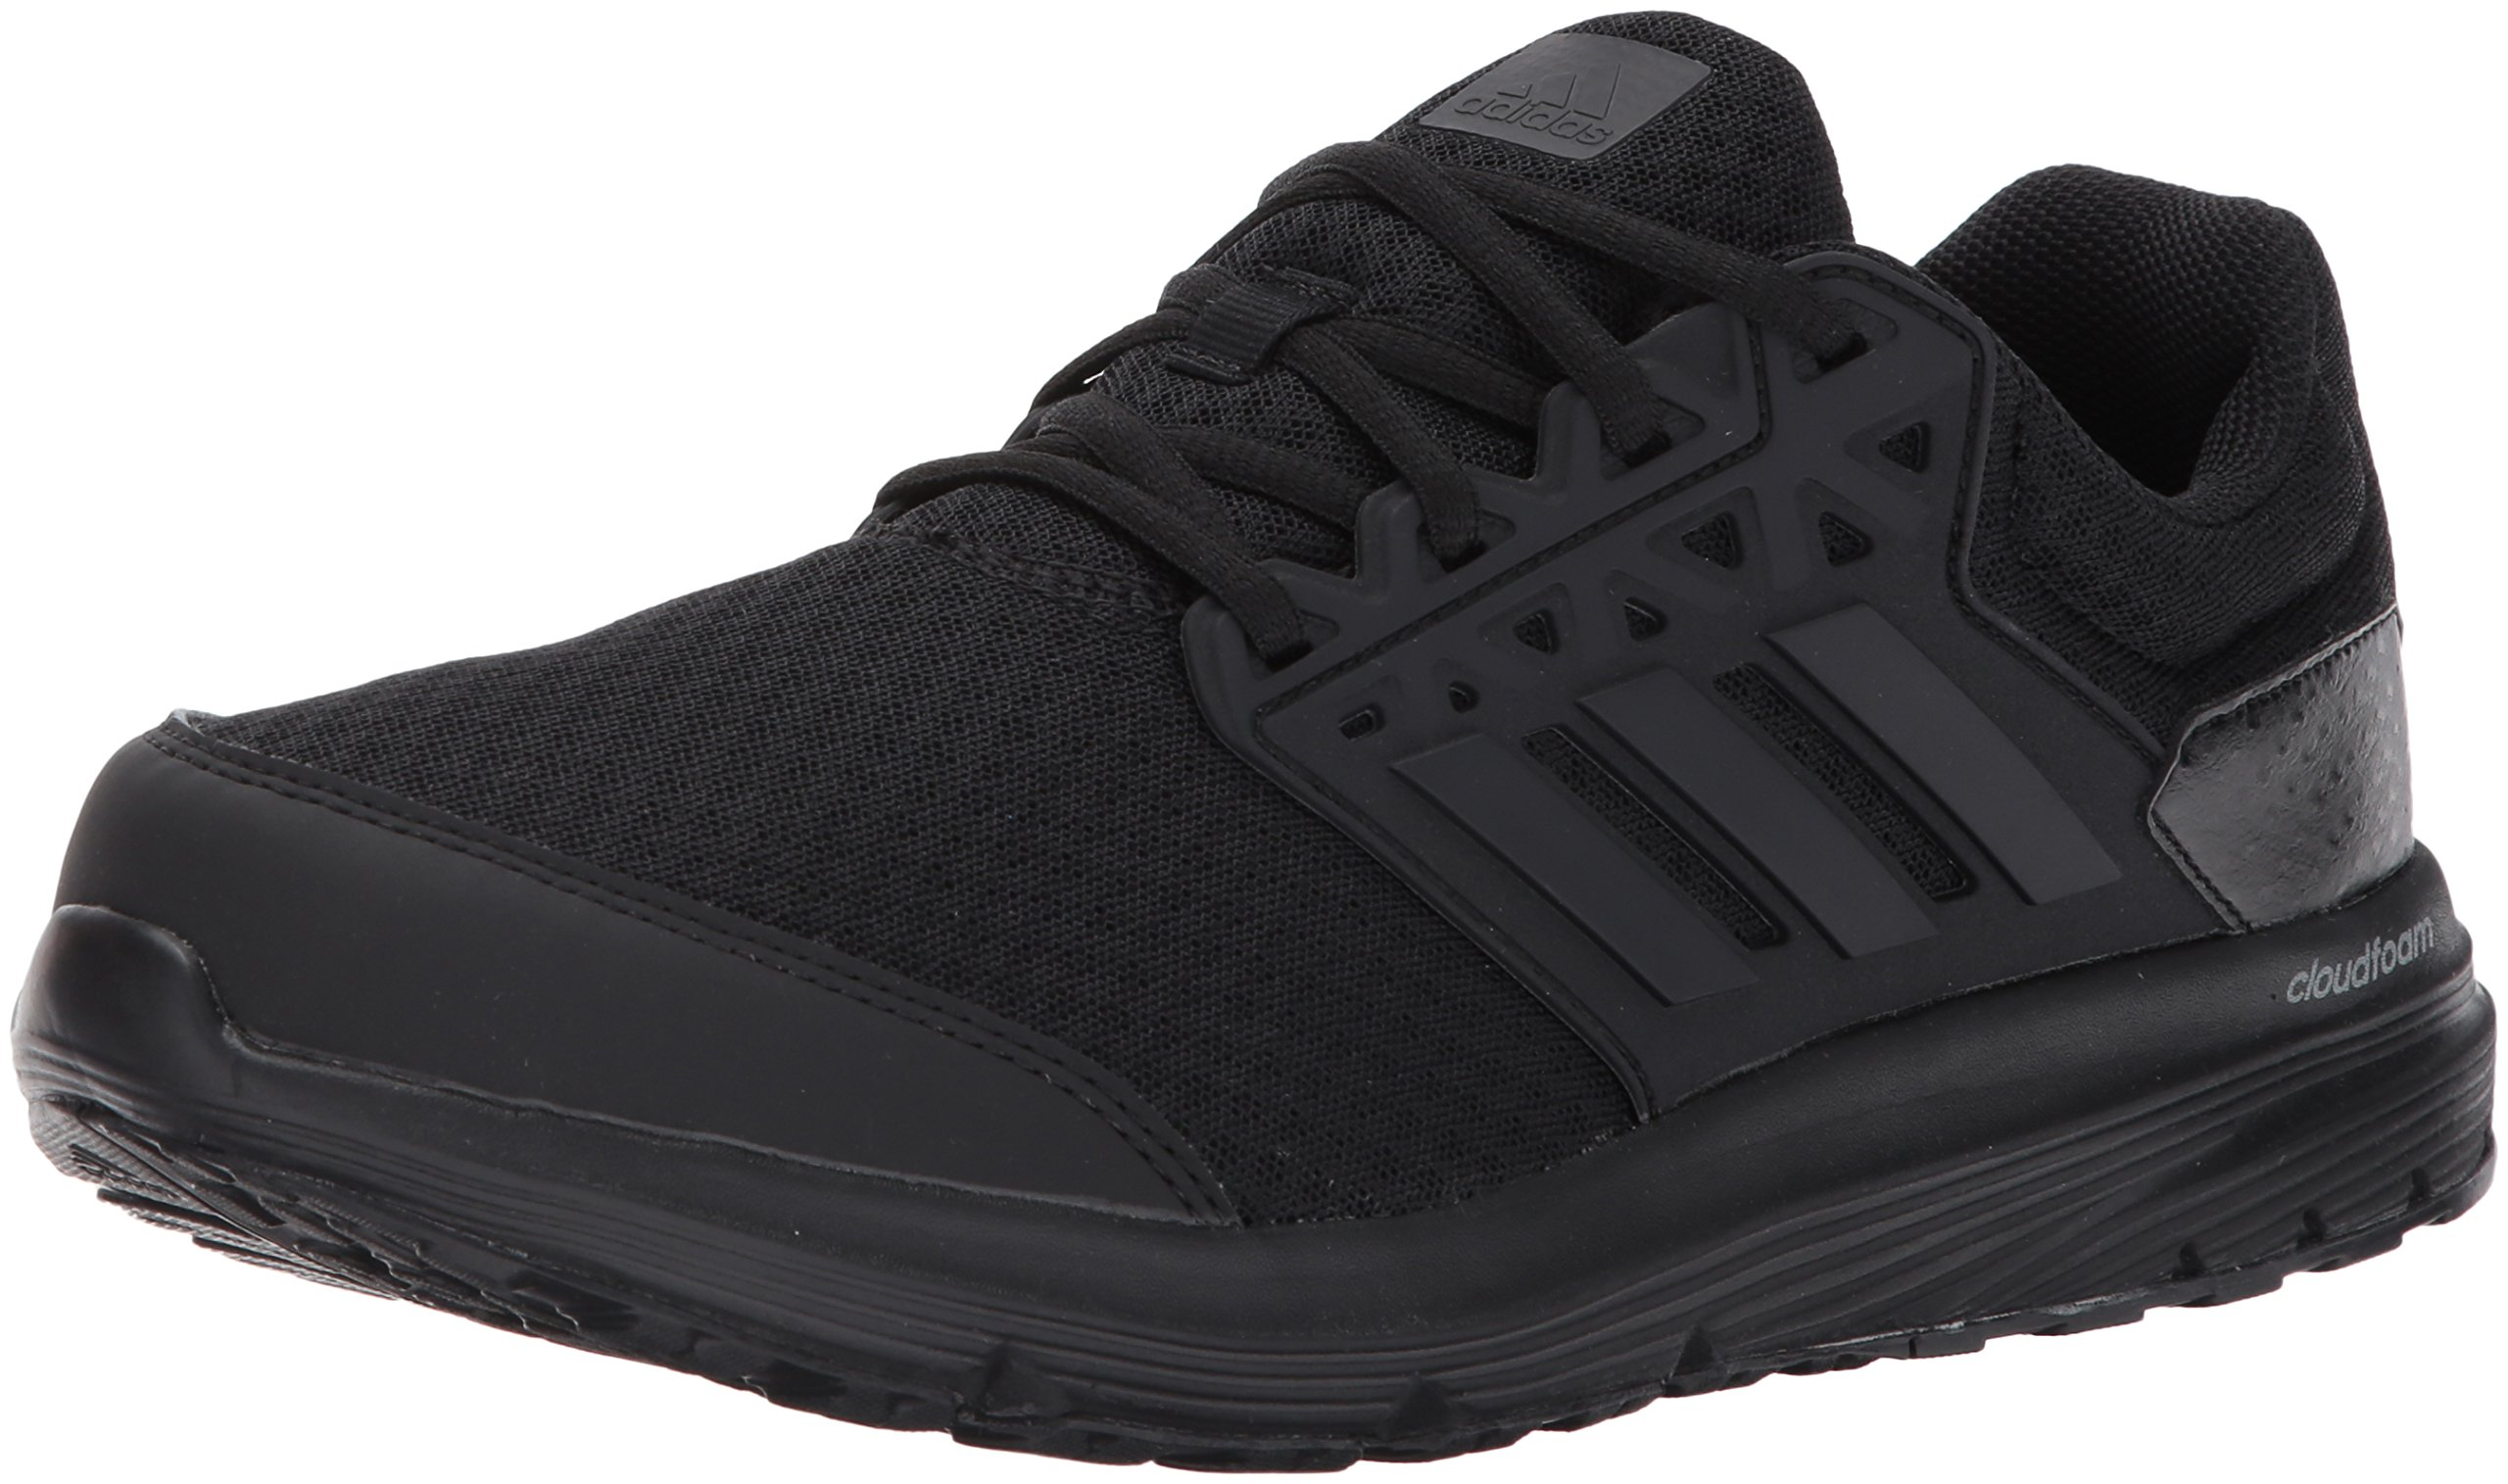 adidas Men's Galaxy 3 Wide m Running Shoe, Black/Black/Black, 9 W US